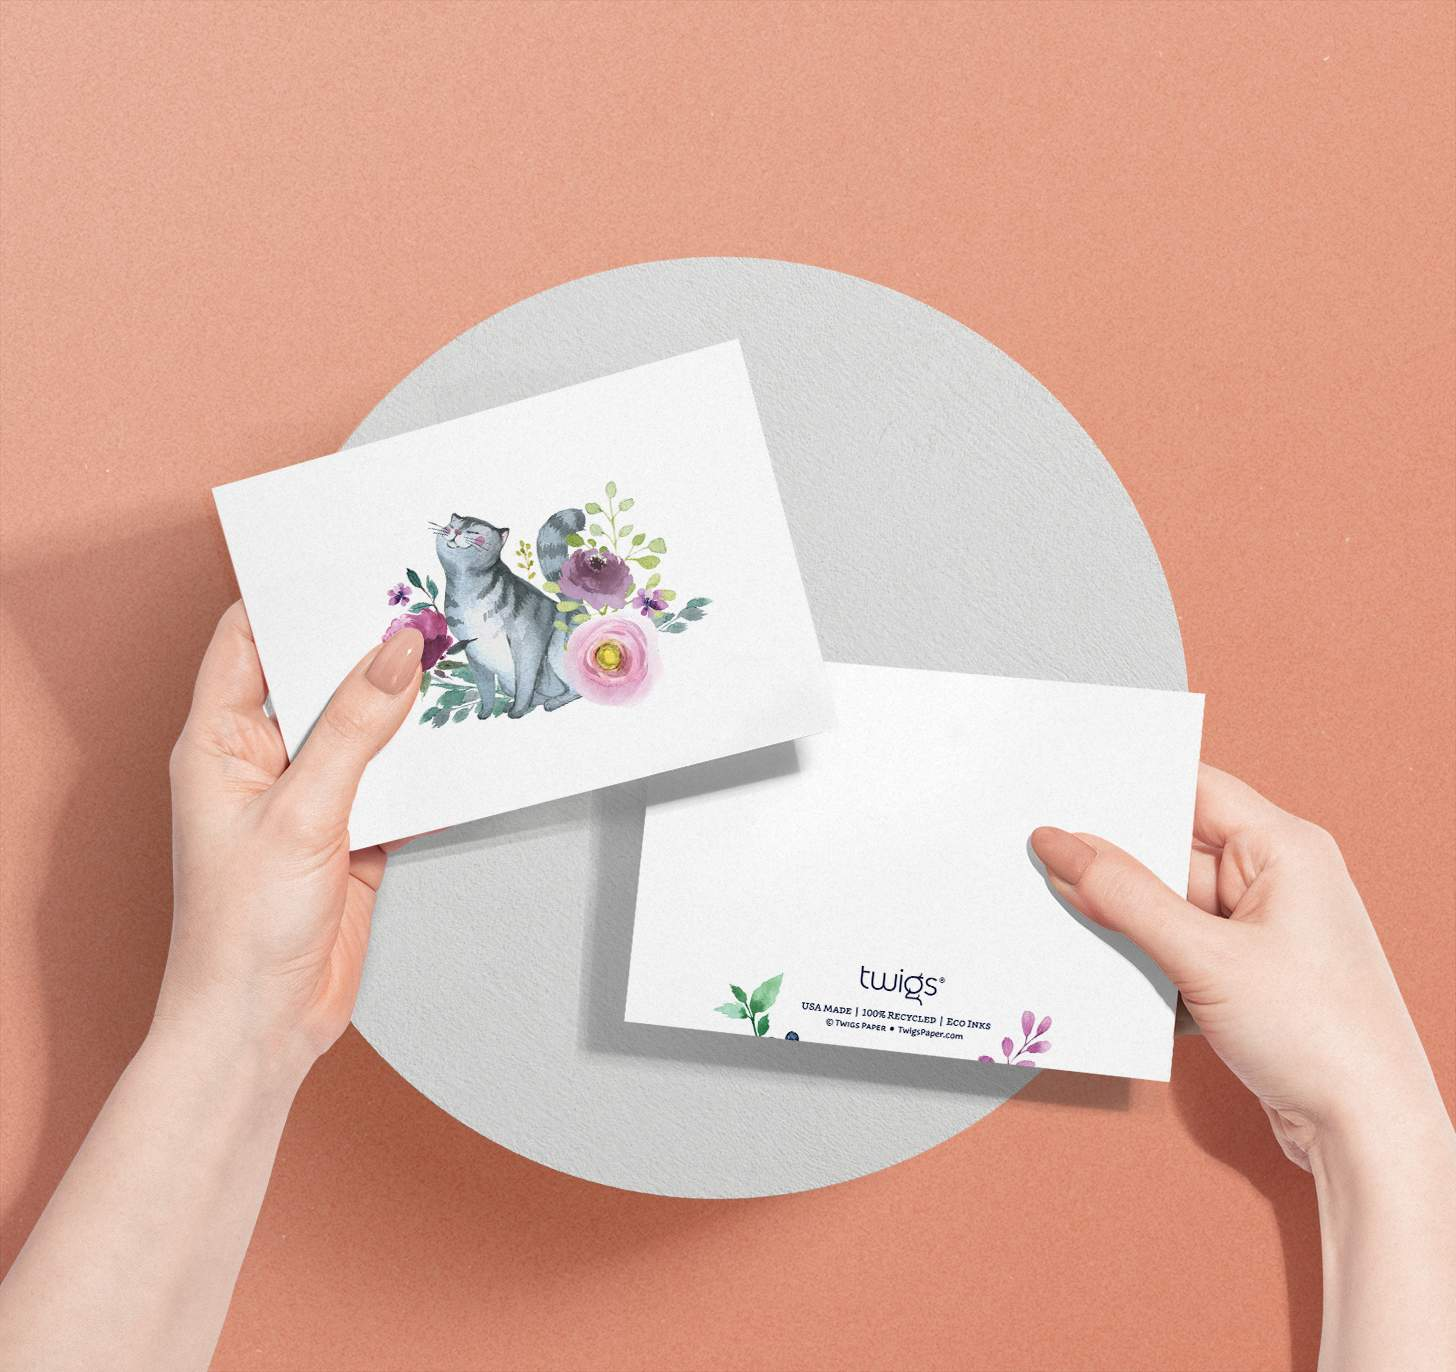 Hands holding Gray striped cat with flowers design card